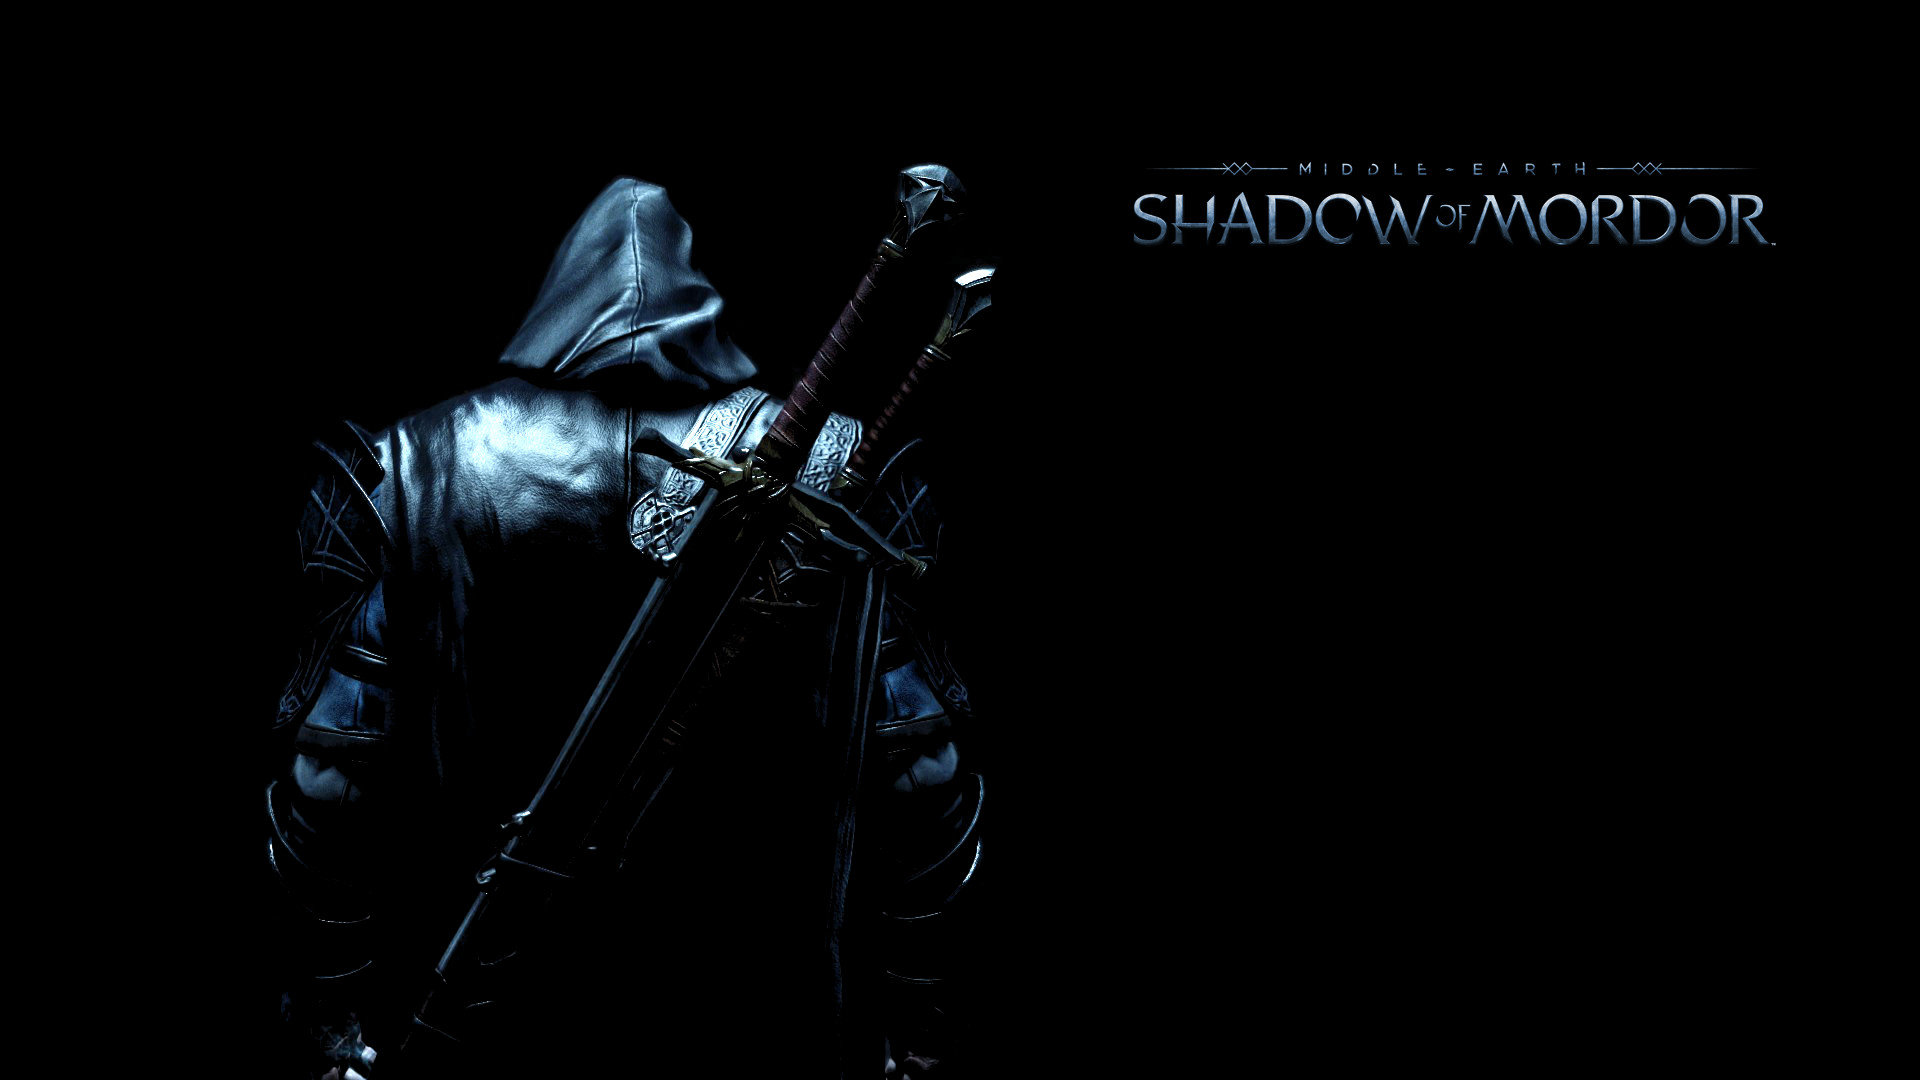 Middle Earth Shadow Of Mordor Wallpapers 1920x1080 Full Hd 1080p